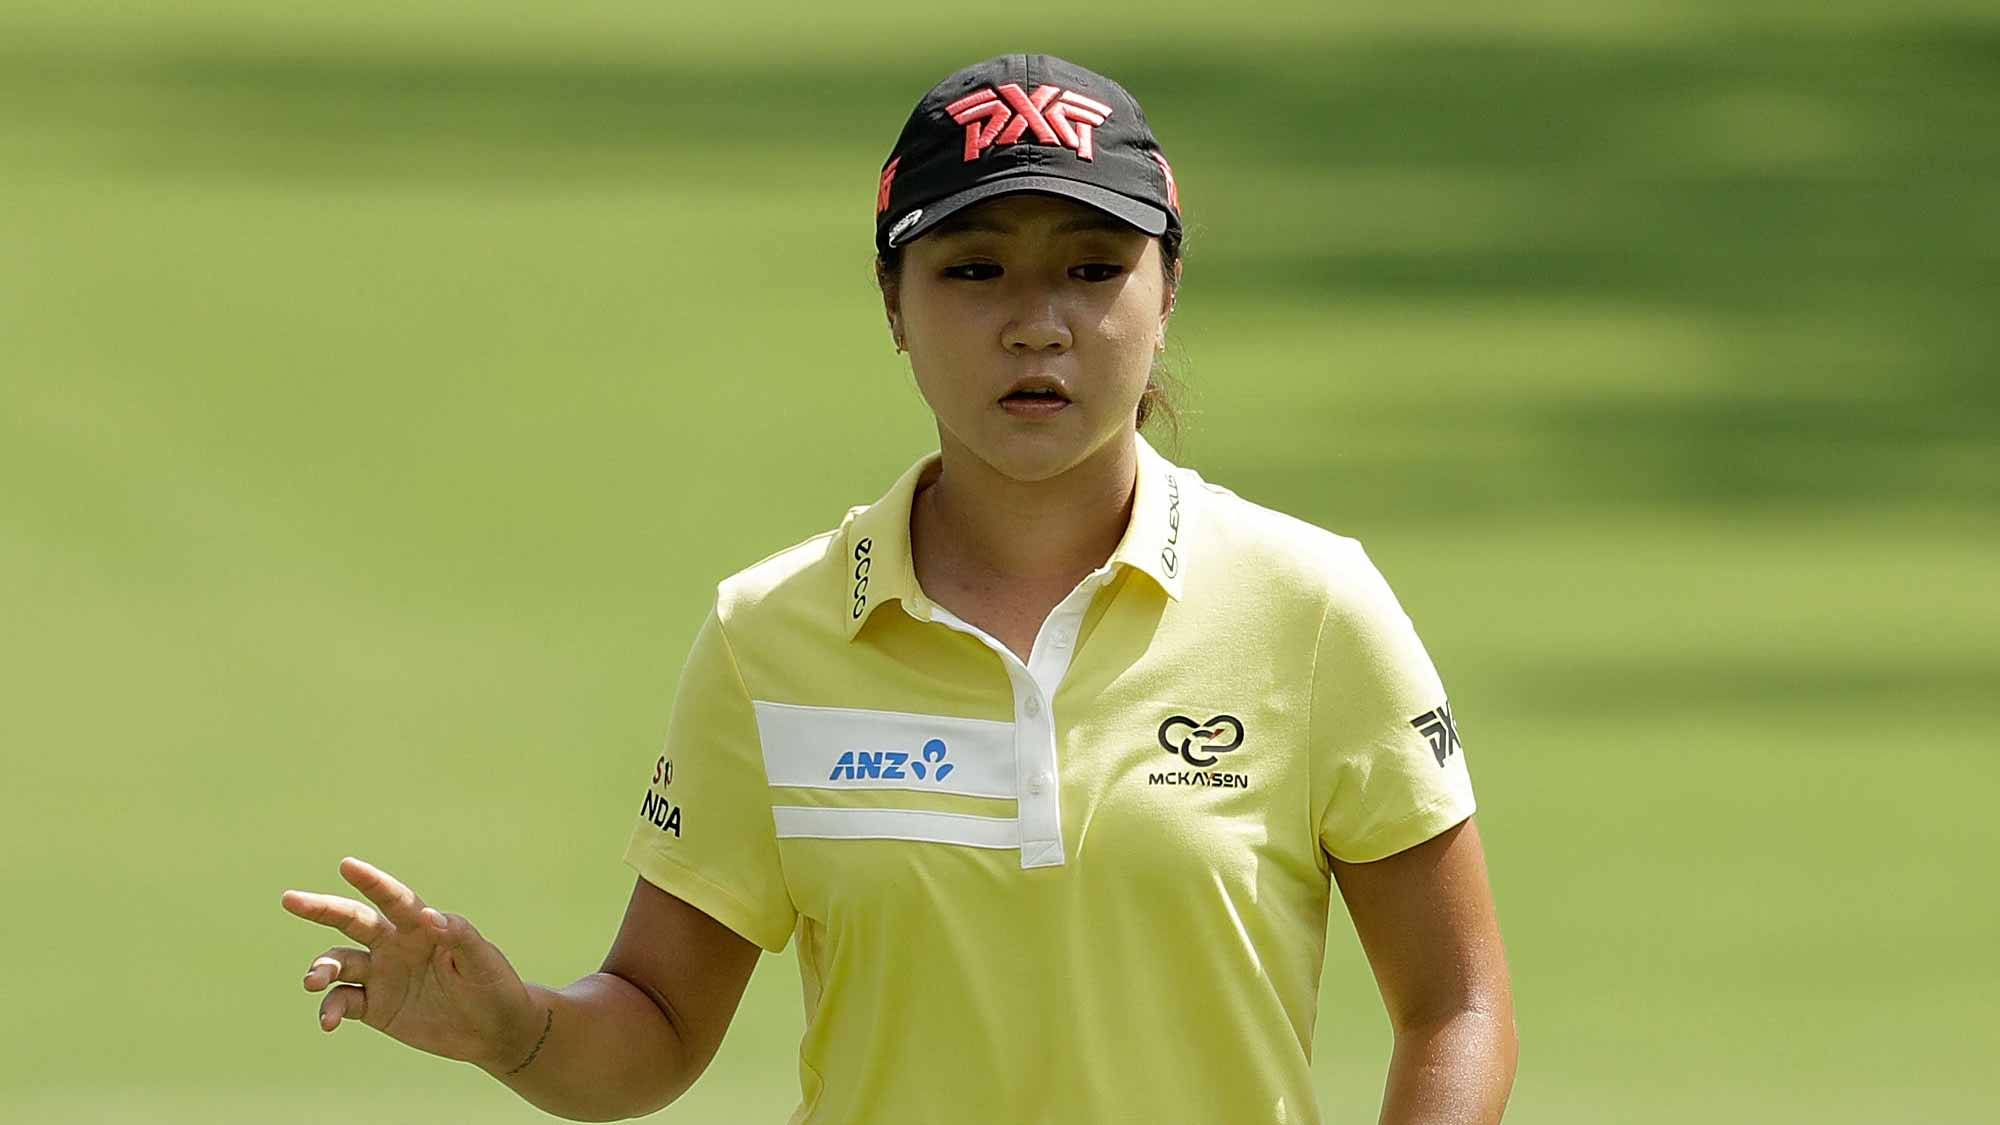 Lydia Ko of New Zealand waves to the crowd following a birdie on the sixth green during the second round of the 2017 KPMG PGA Championship at Olympia Fields